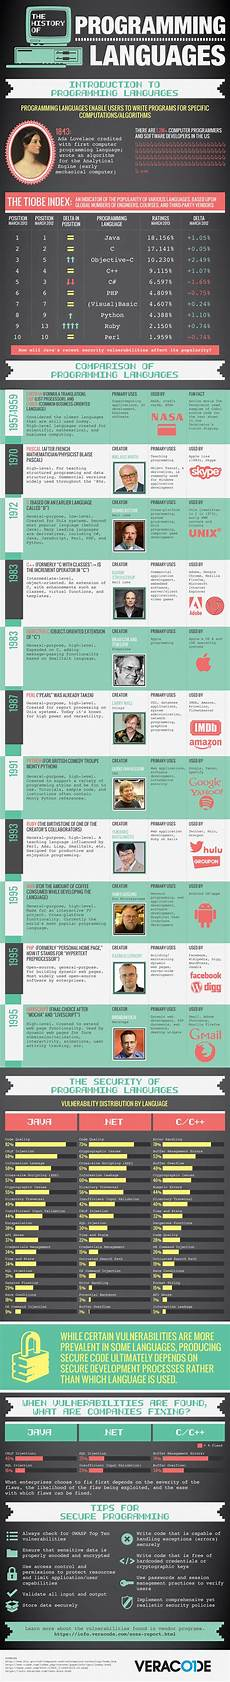 language history the history of programming languages infographic ca veracode